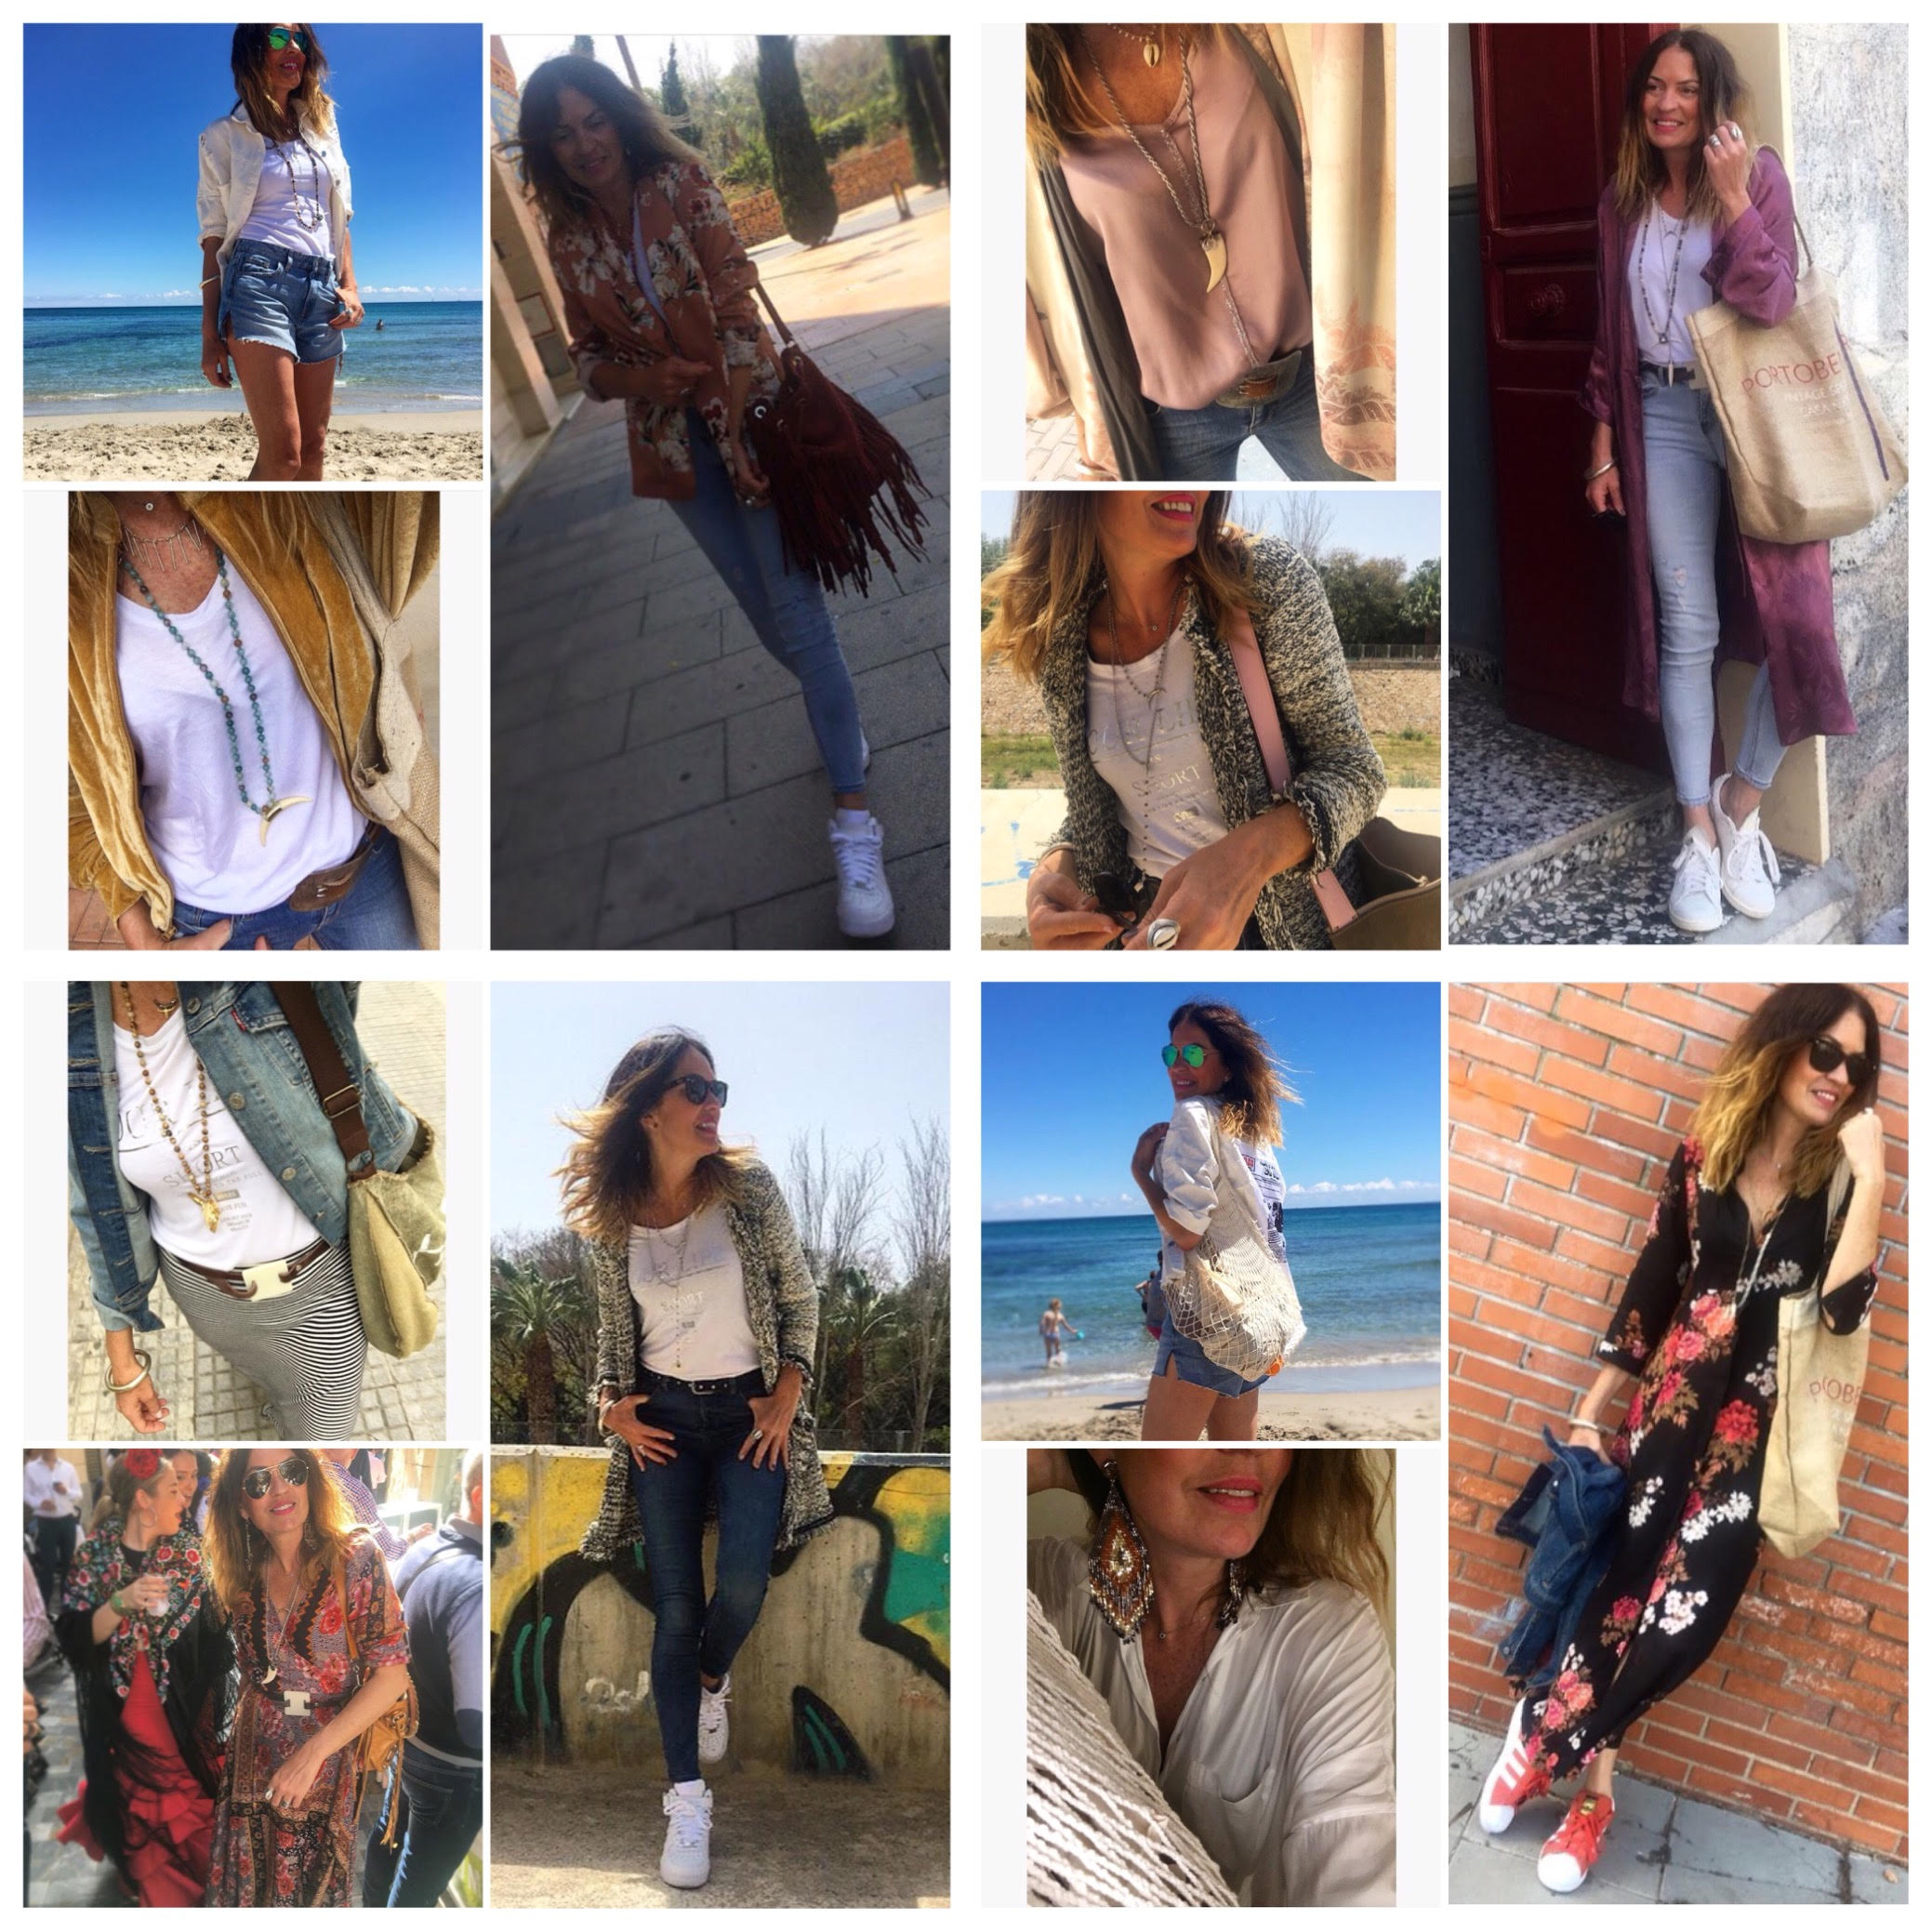 sDIOSAS 146 #lOOKS oF tHE dAY-6365-sdiosas